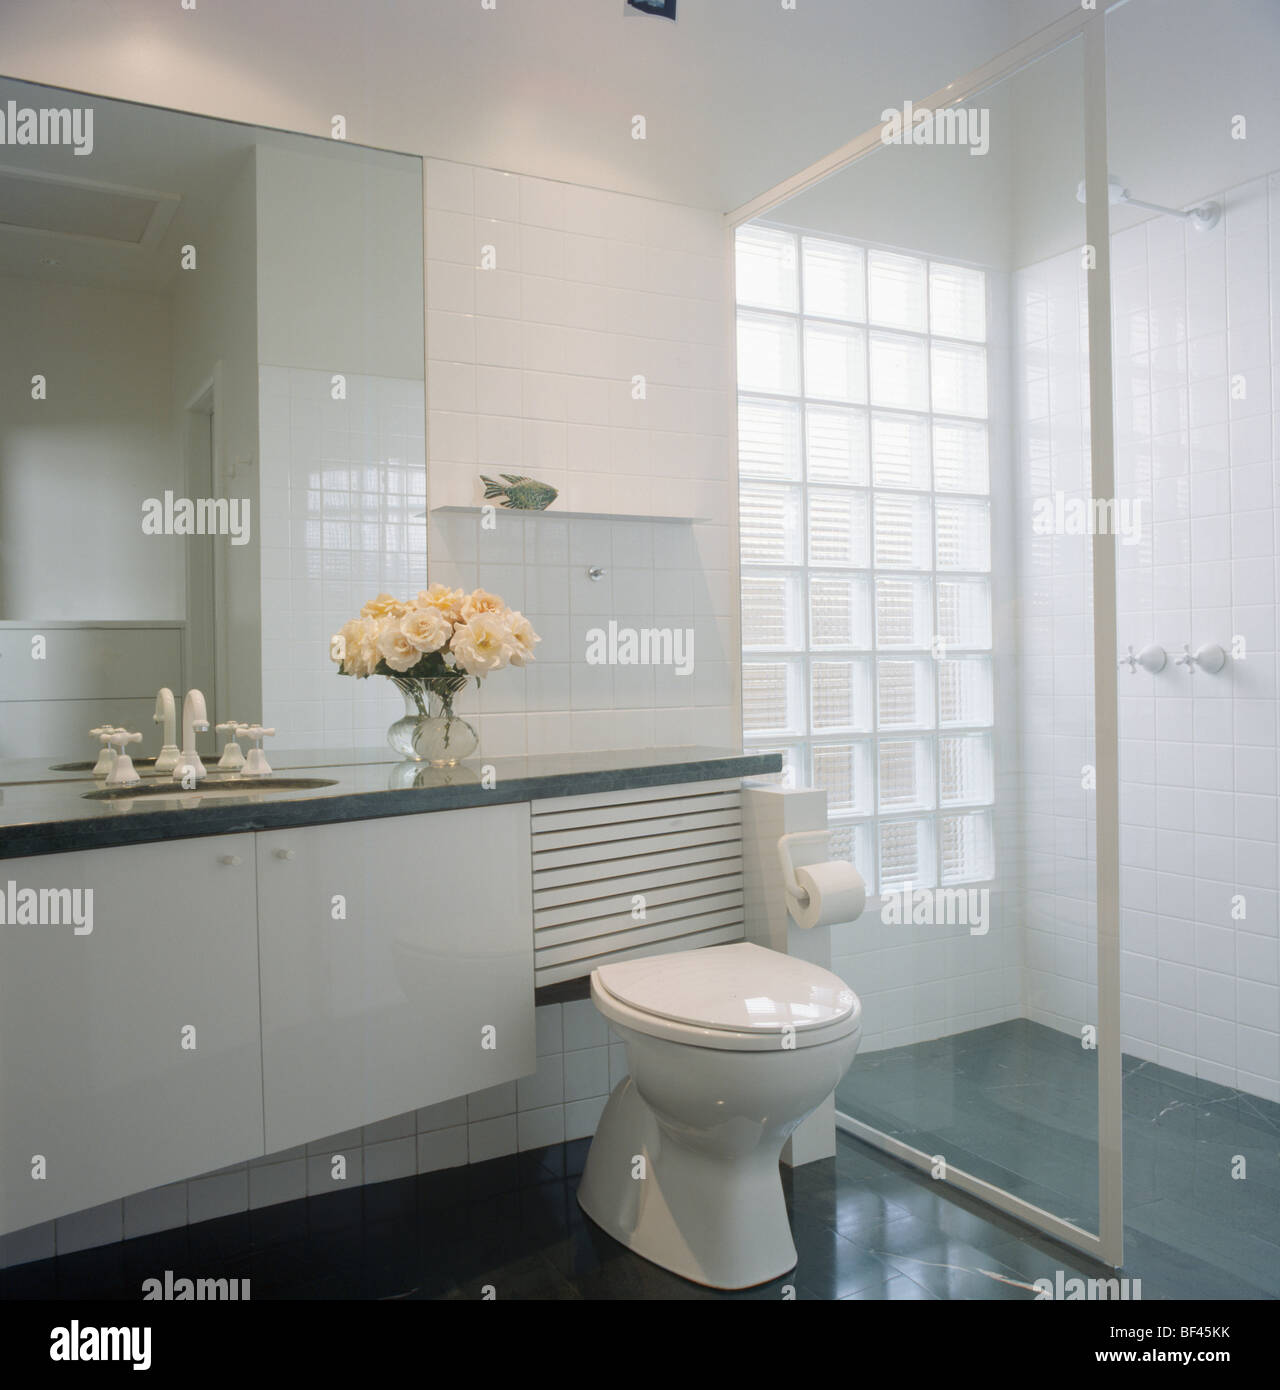 Glass door on walk-in shower in modern white bathroom with glass ...